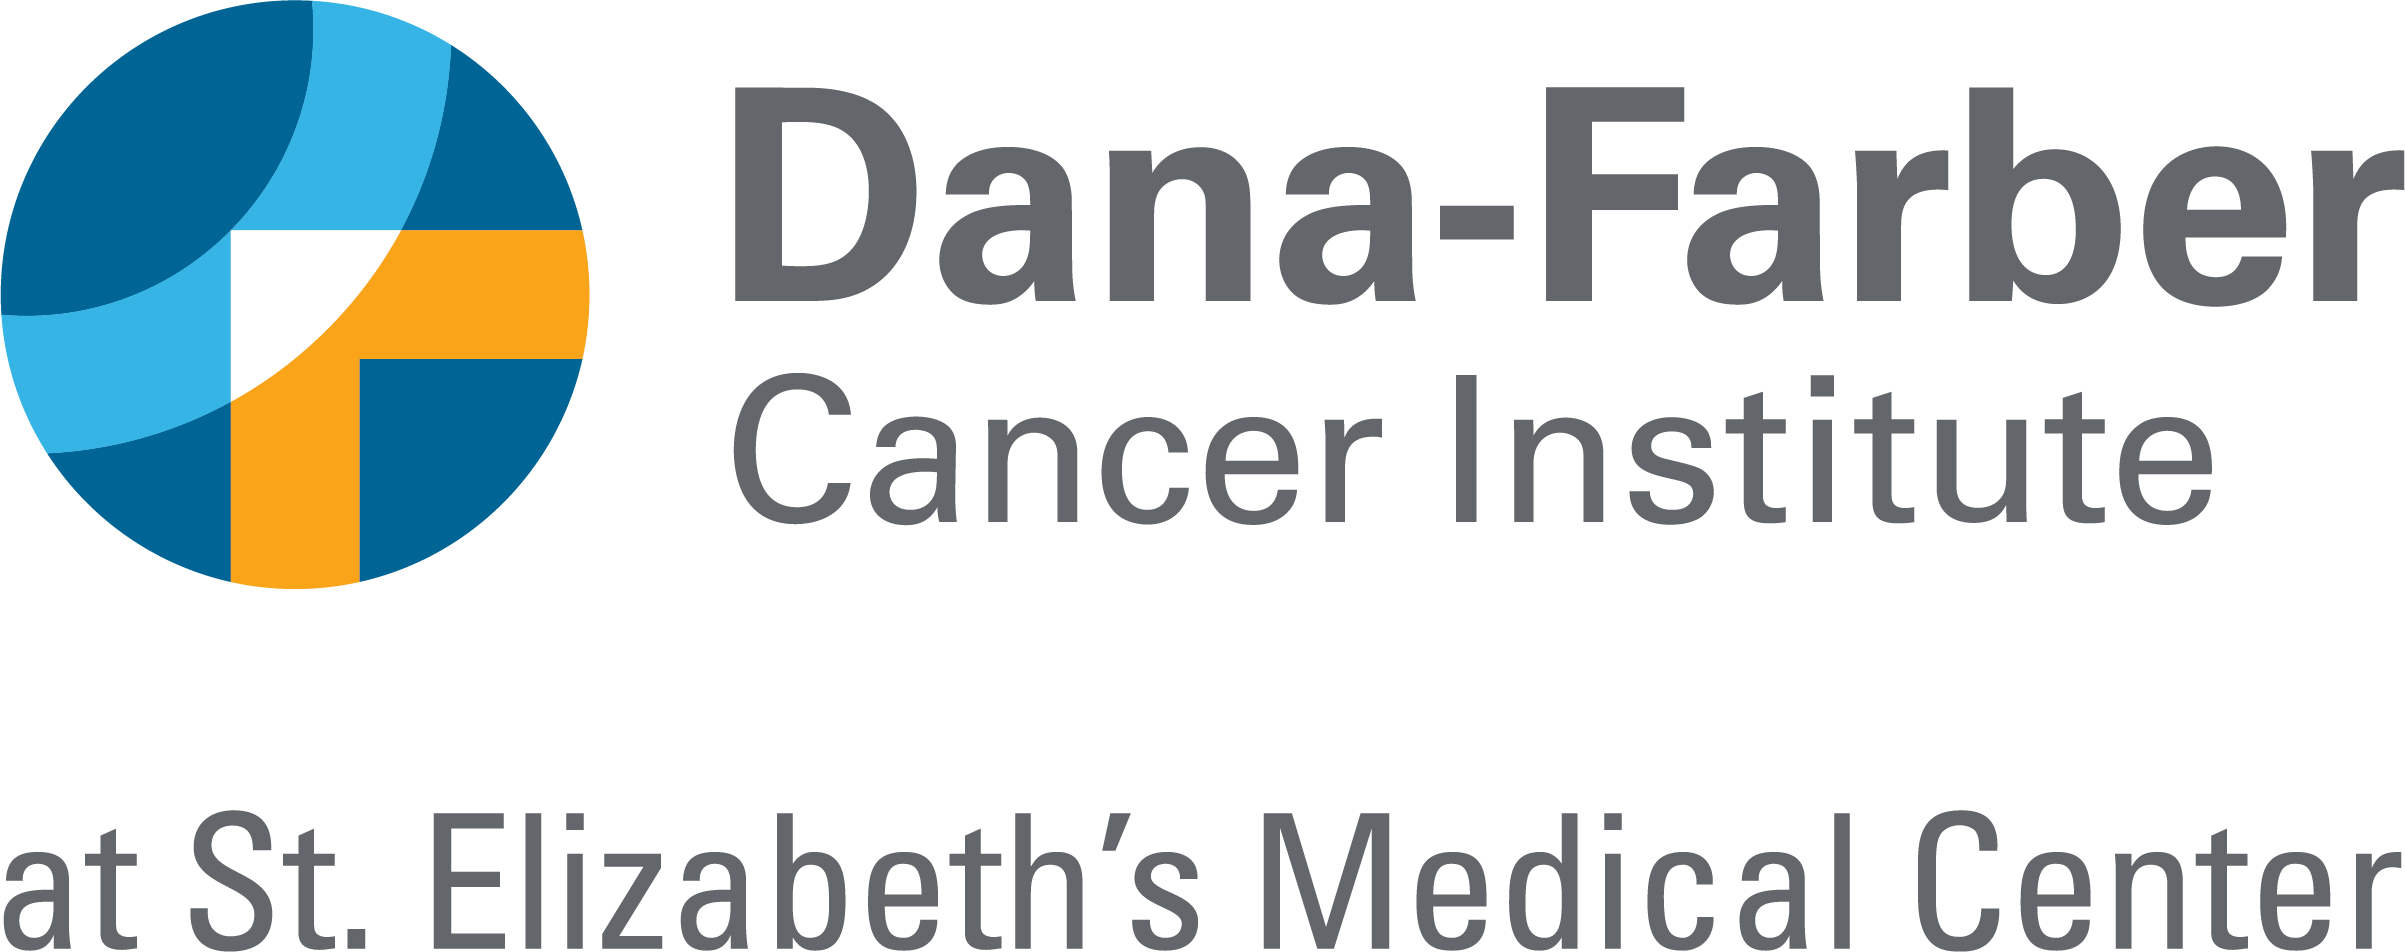 Dana-Farber Cancer doctors are now seeing patients at St. Elizabeth's Medical Center